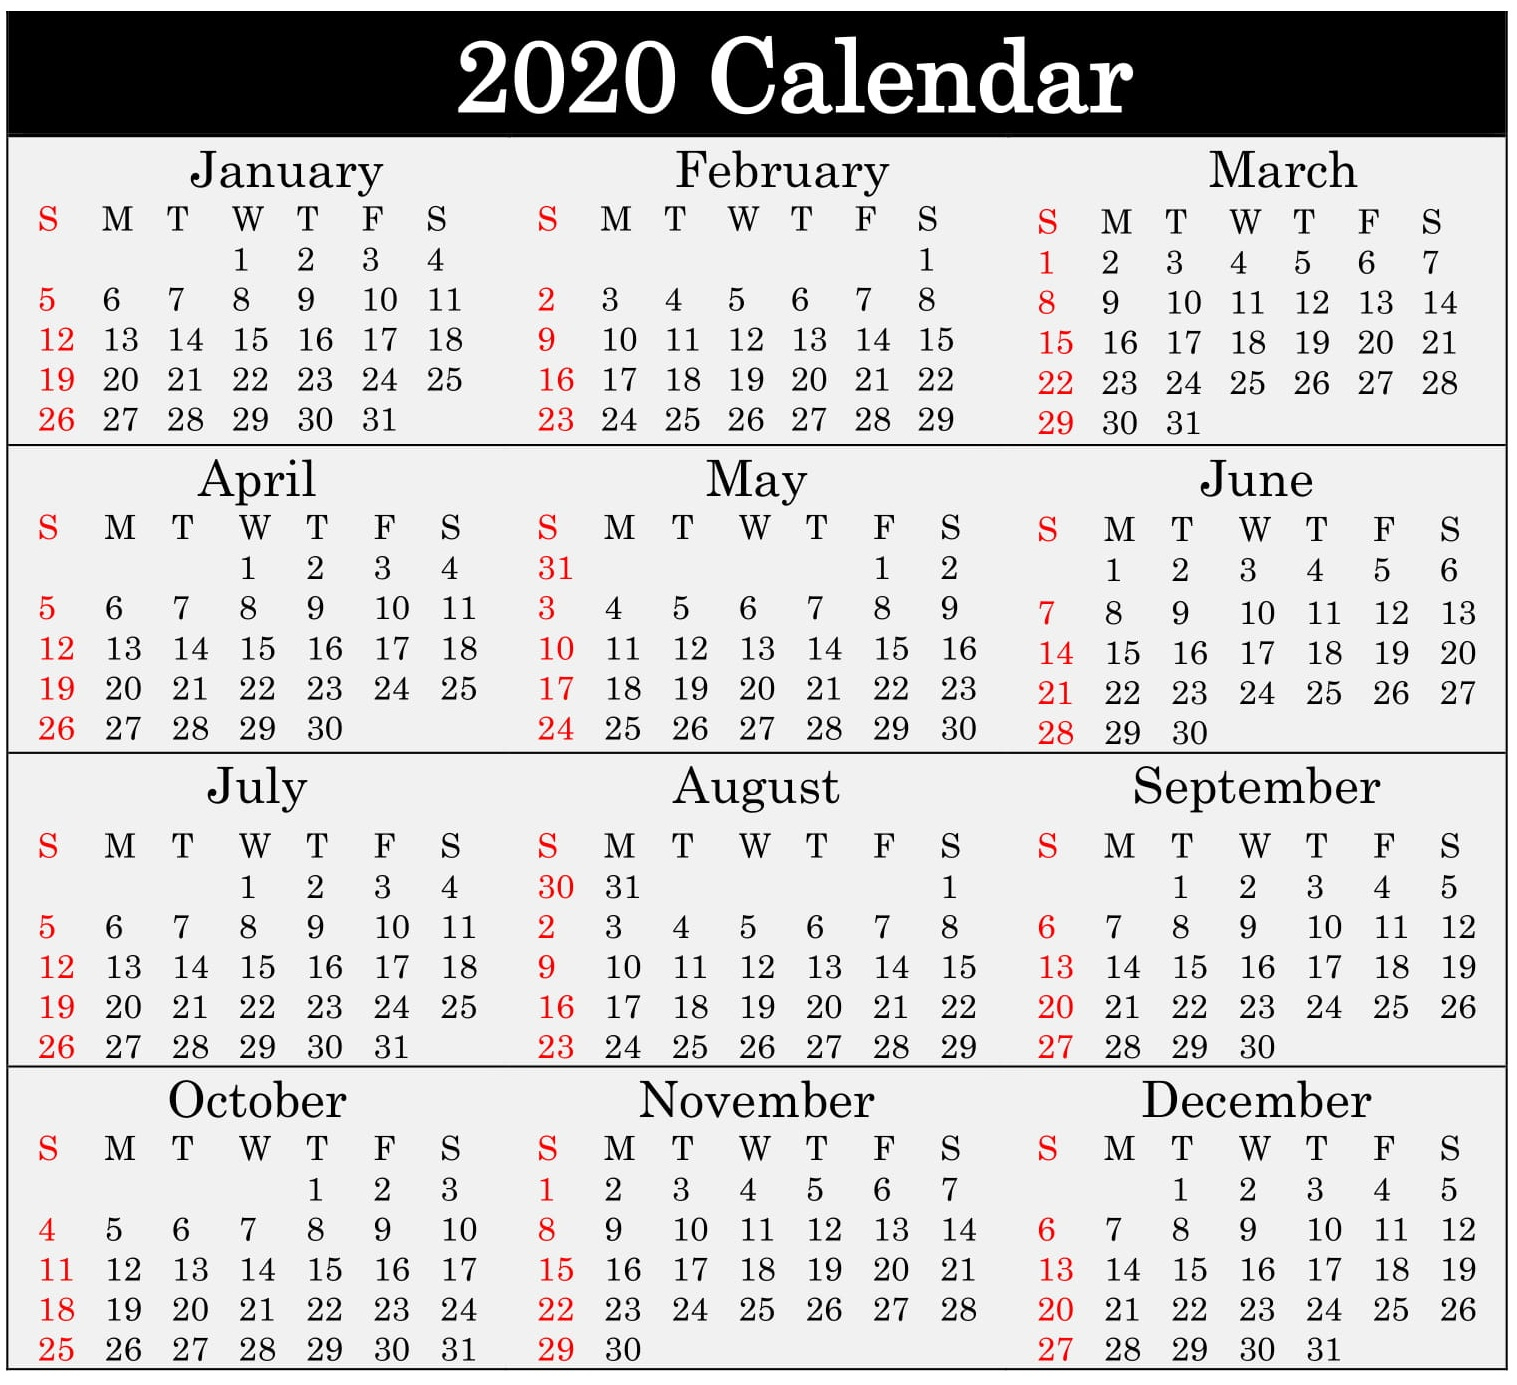 Printable 2020 Calendar Word Document  Latest Printable for Julian 2020 Calendar